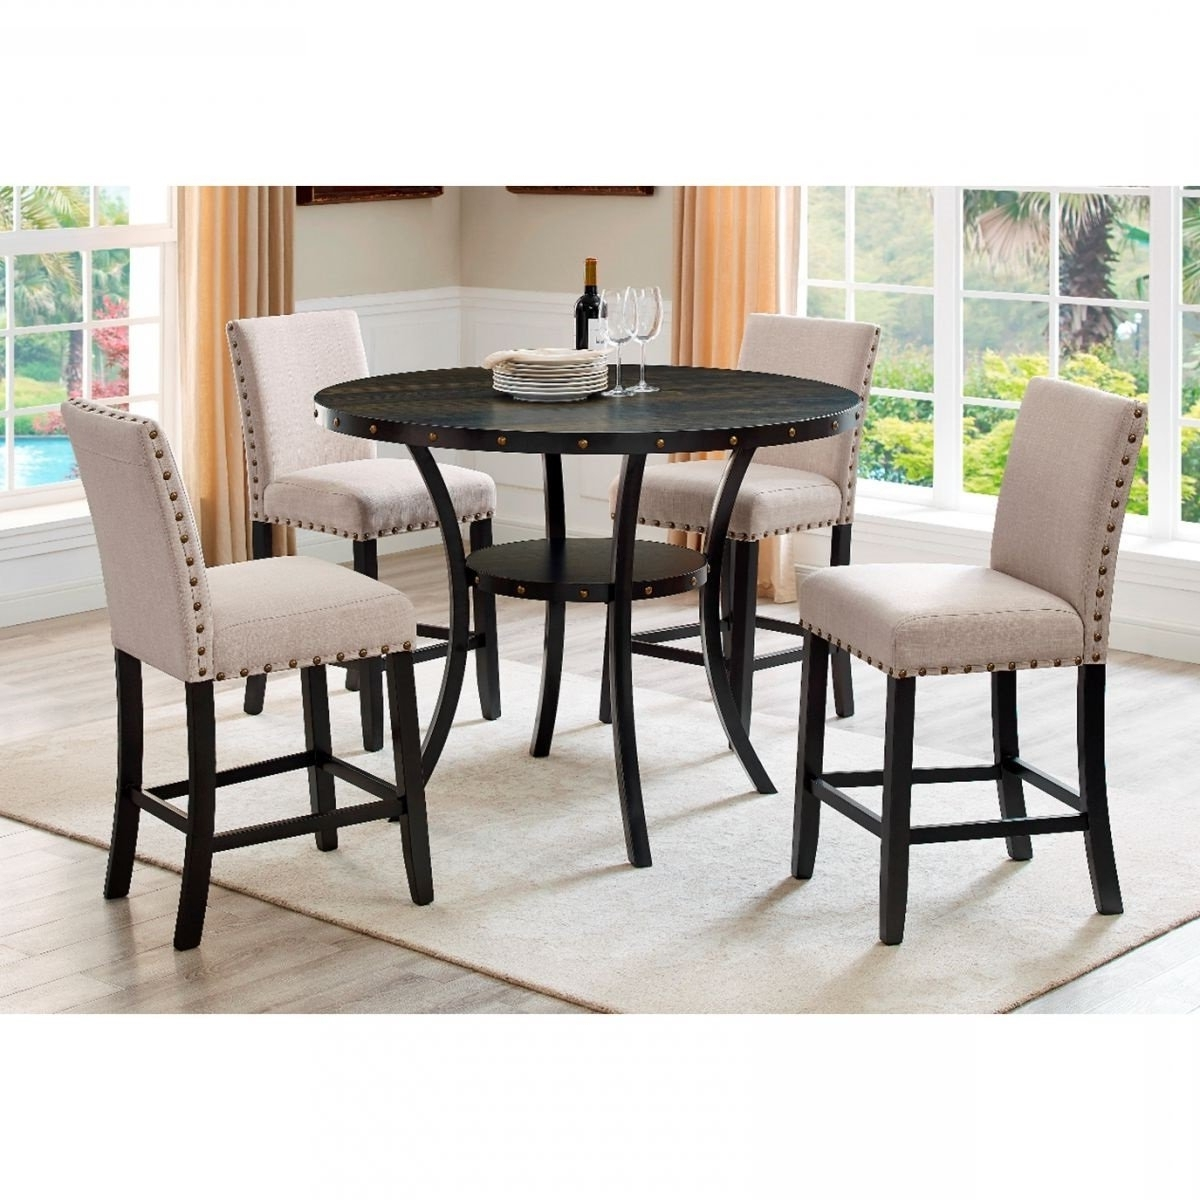 Preferred Madison 5 Pc Counter Height Dining Room (Gallery 13 of 25)